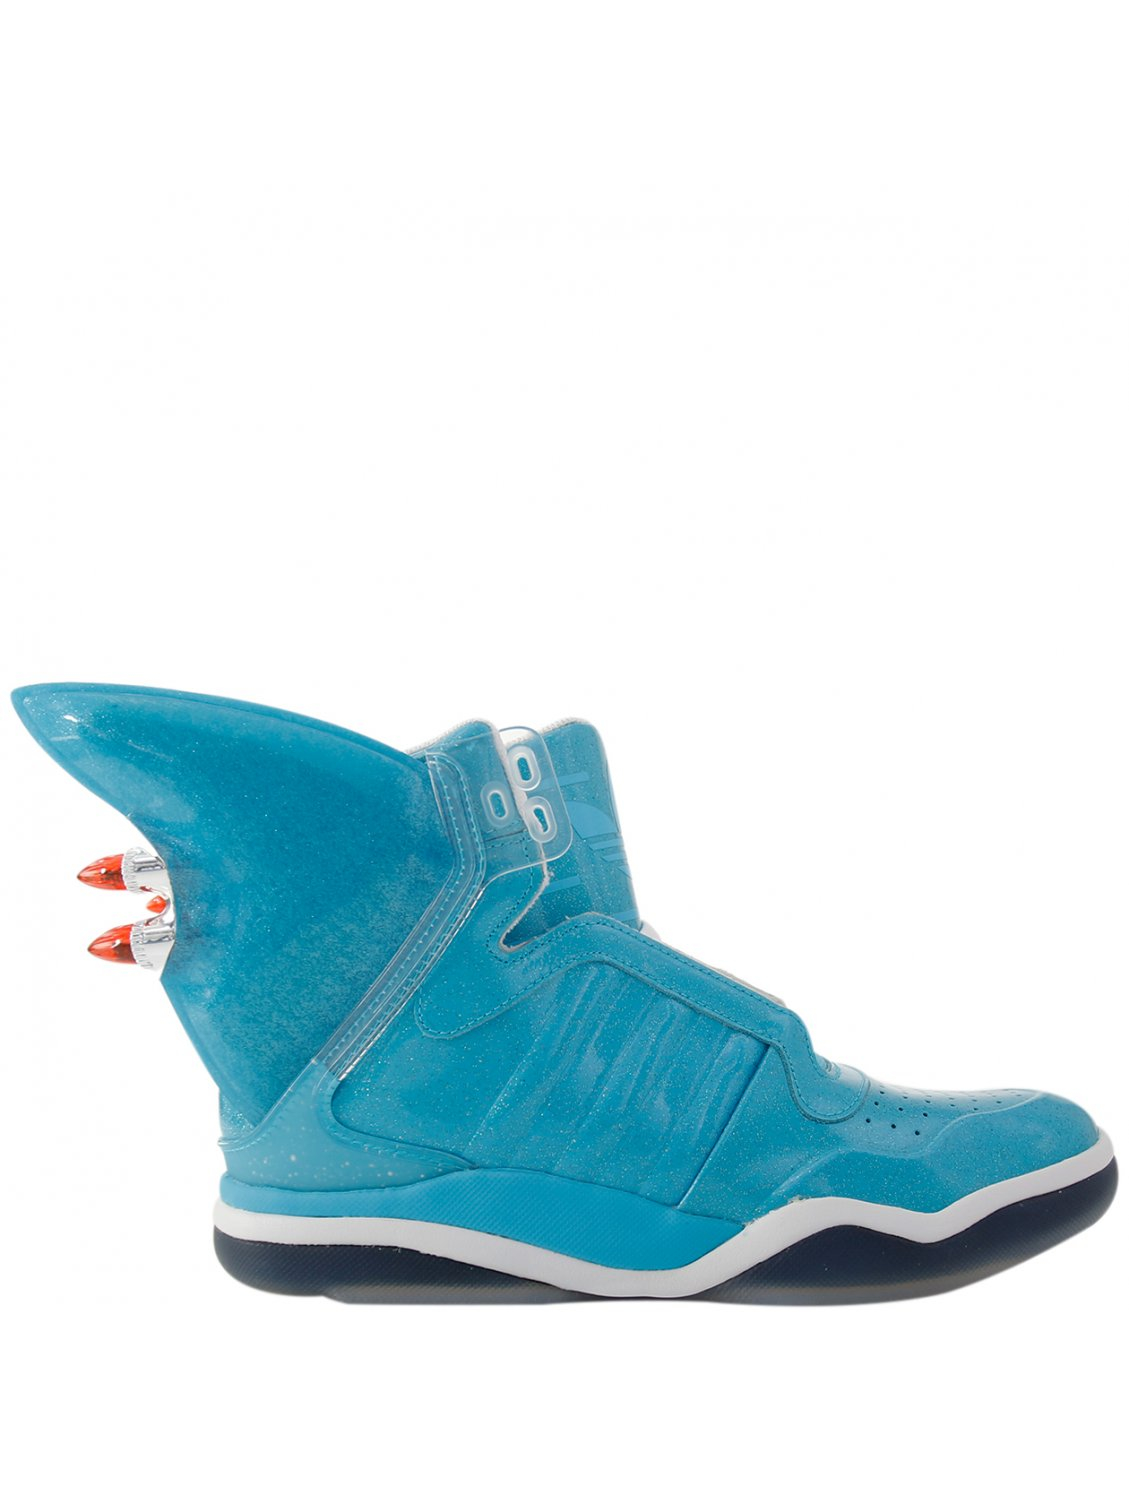 c2a73cf9d33f Jeremy Scott for adidas Jeremy Scott X Adidas Shark Hi-top Trainers ...